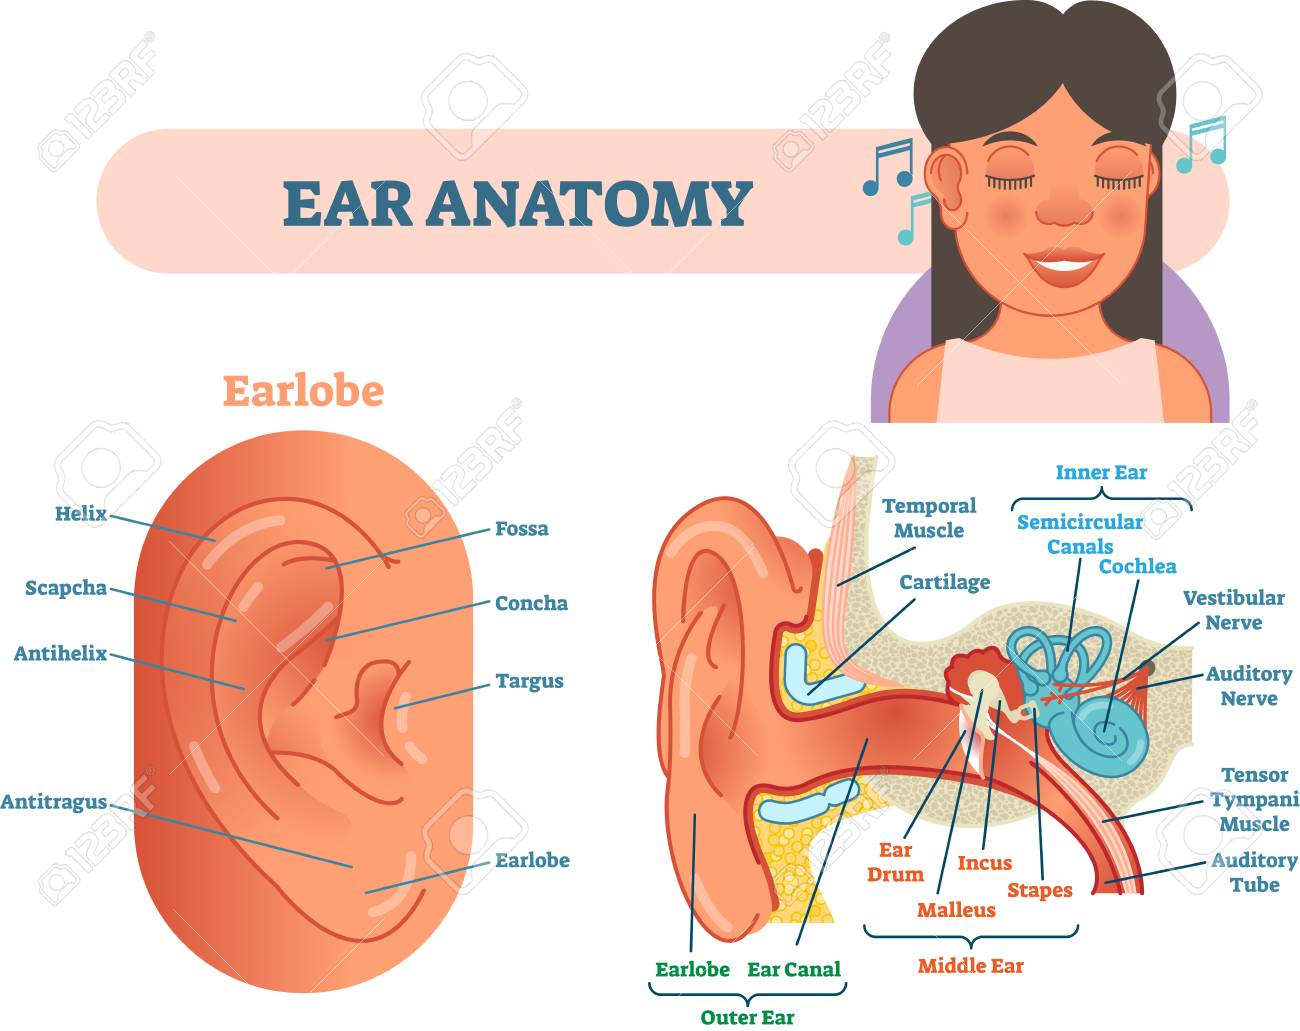 Ear Anatomy Medical Vector Illustration Royalty Free Cliparts ...